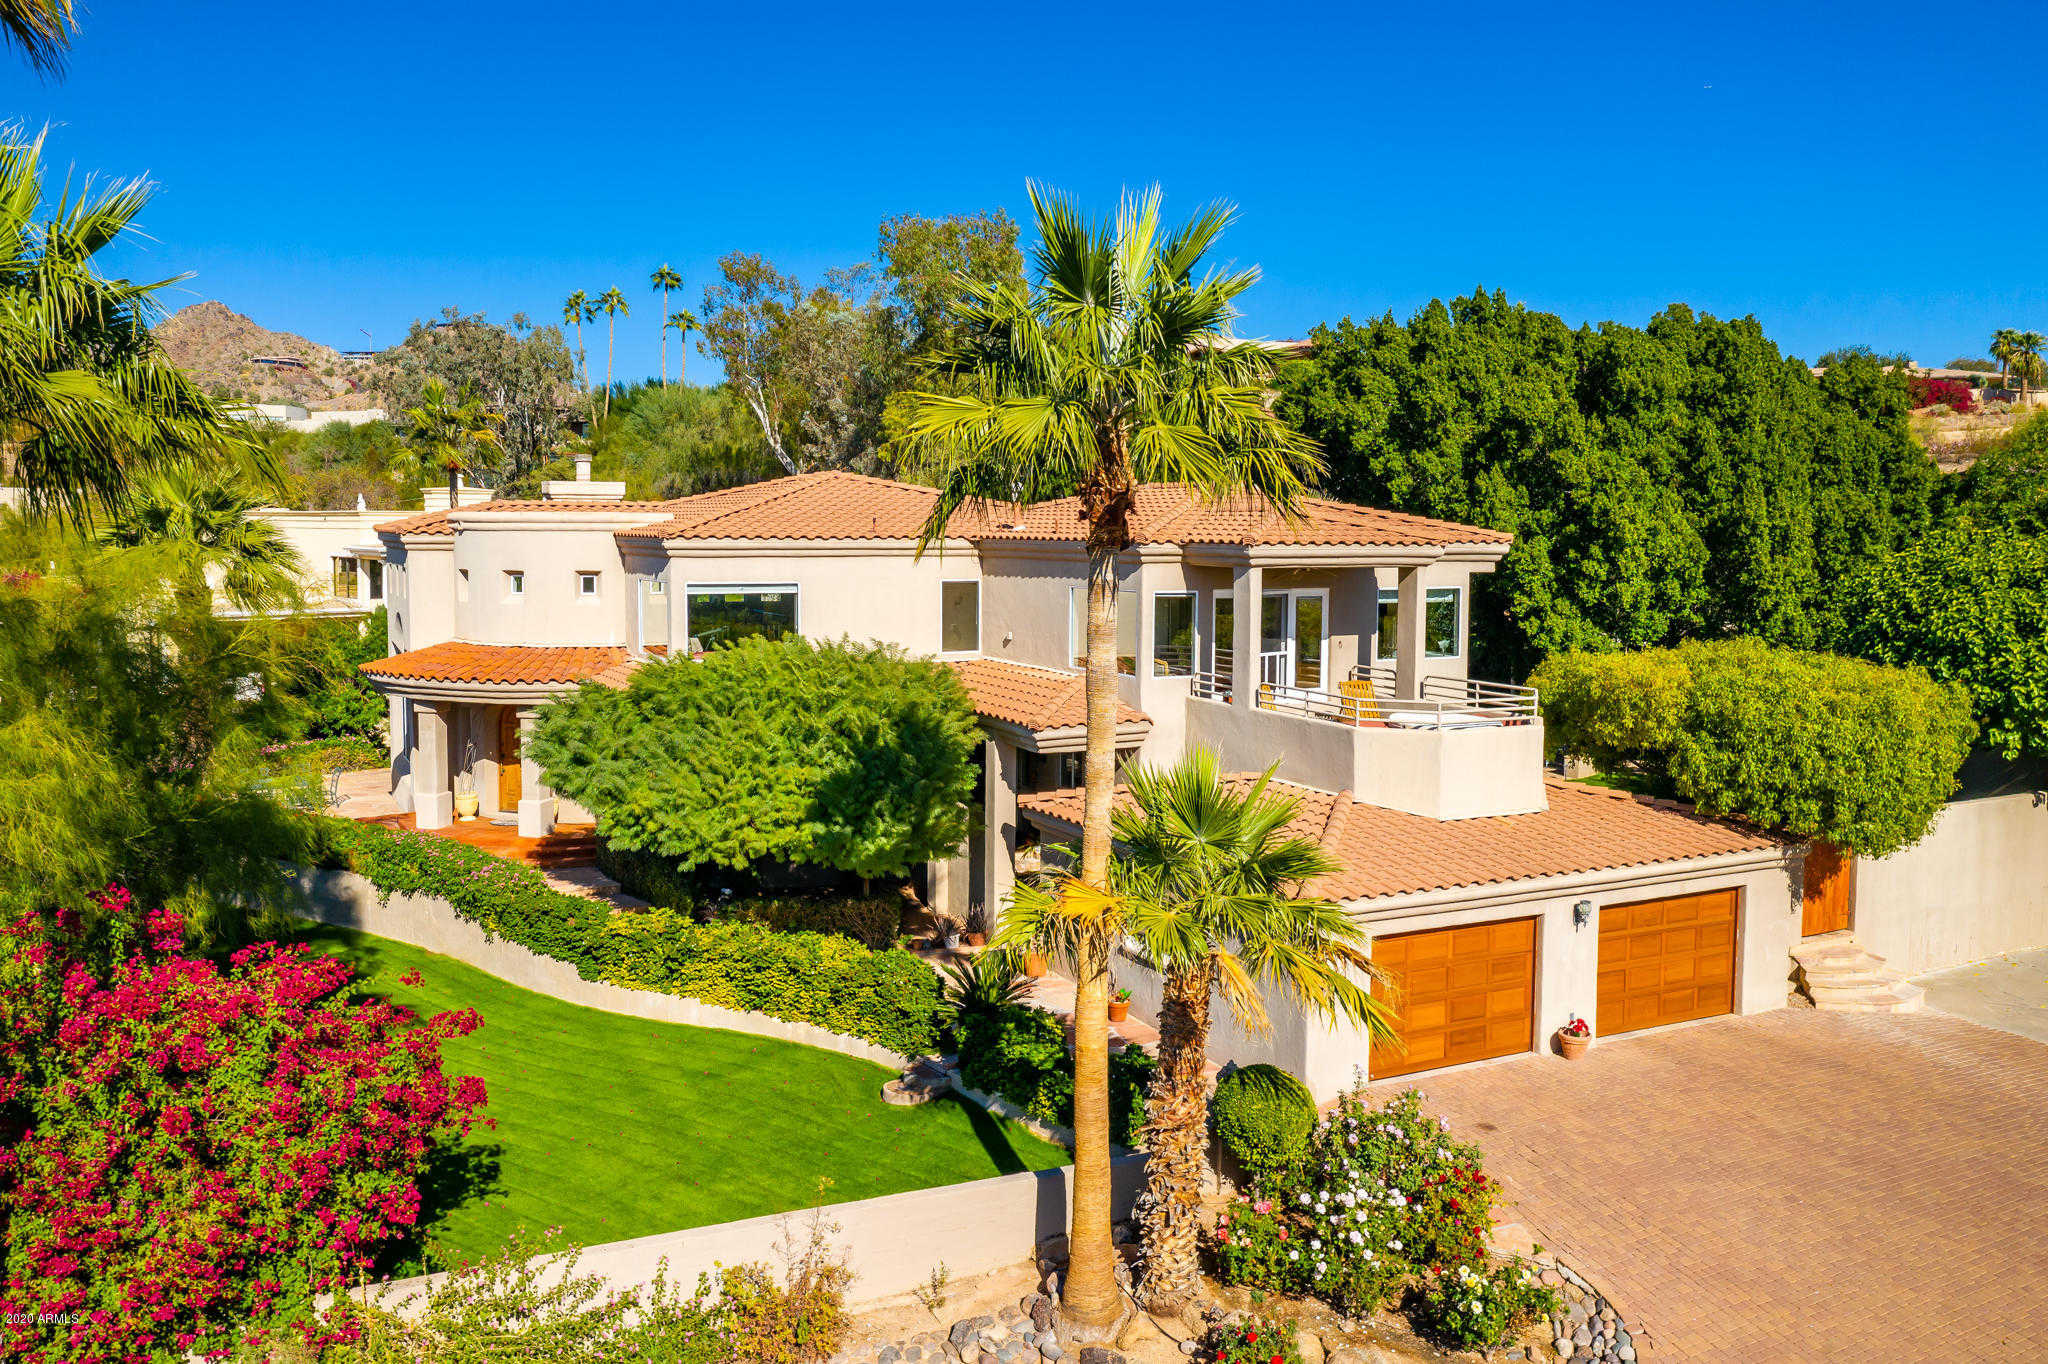 $1,877,000 - 5Br/5Ba - Home for Sale in Camelback Foothills, Paradise Valley